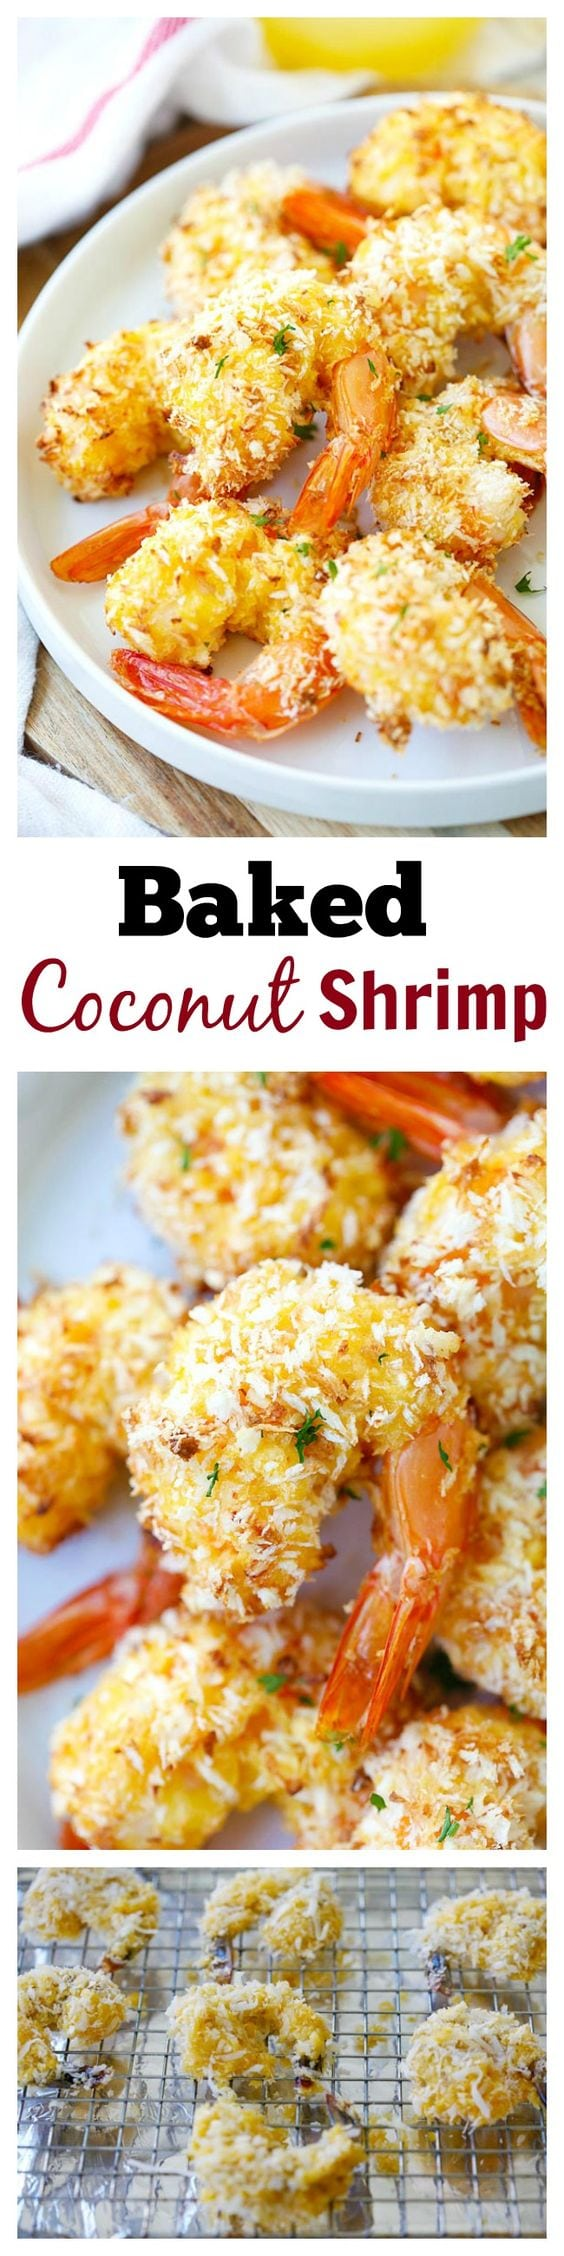 Easy baked coconut shrimp recipes